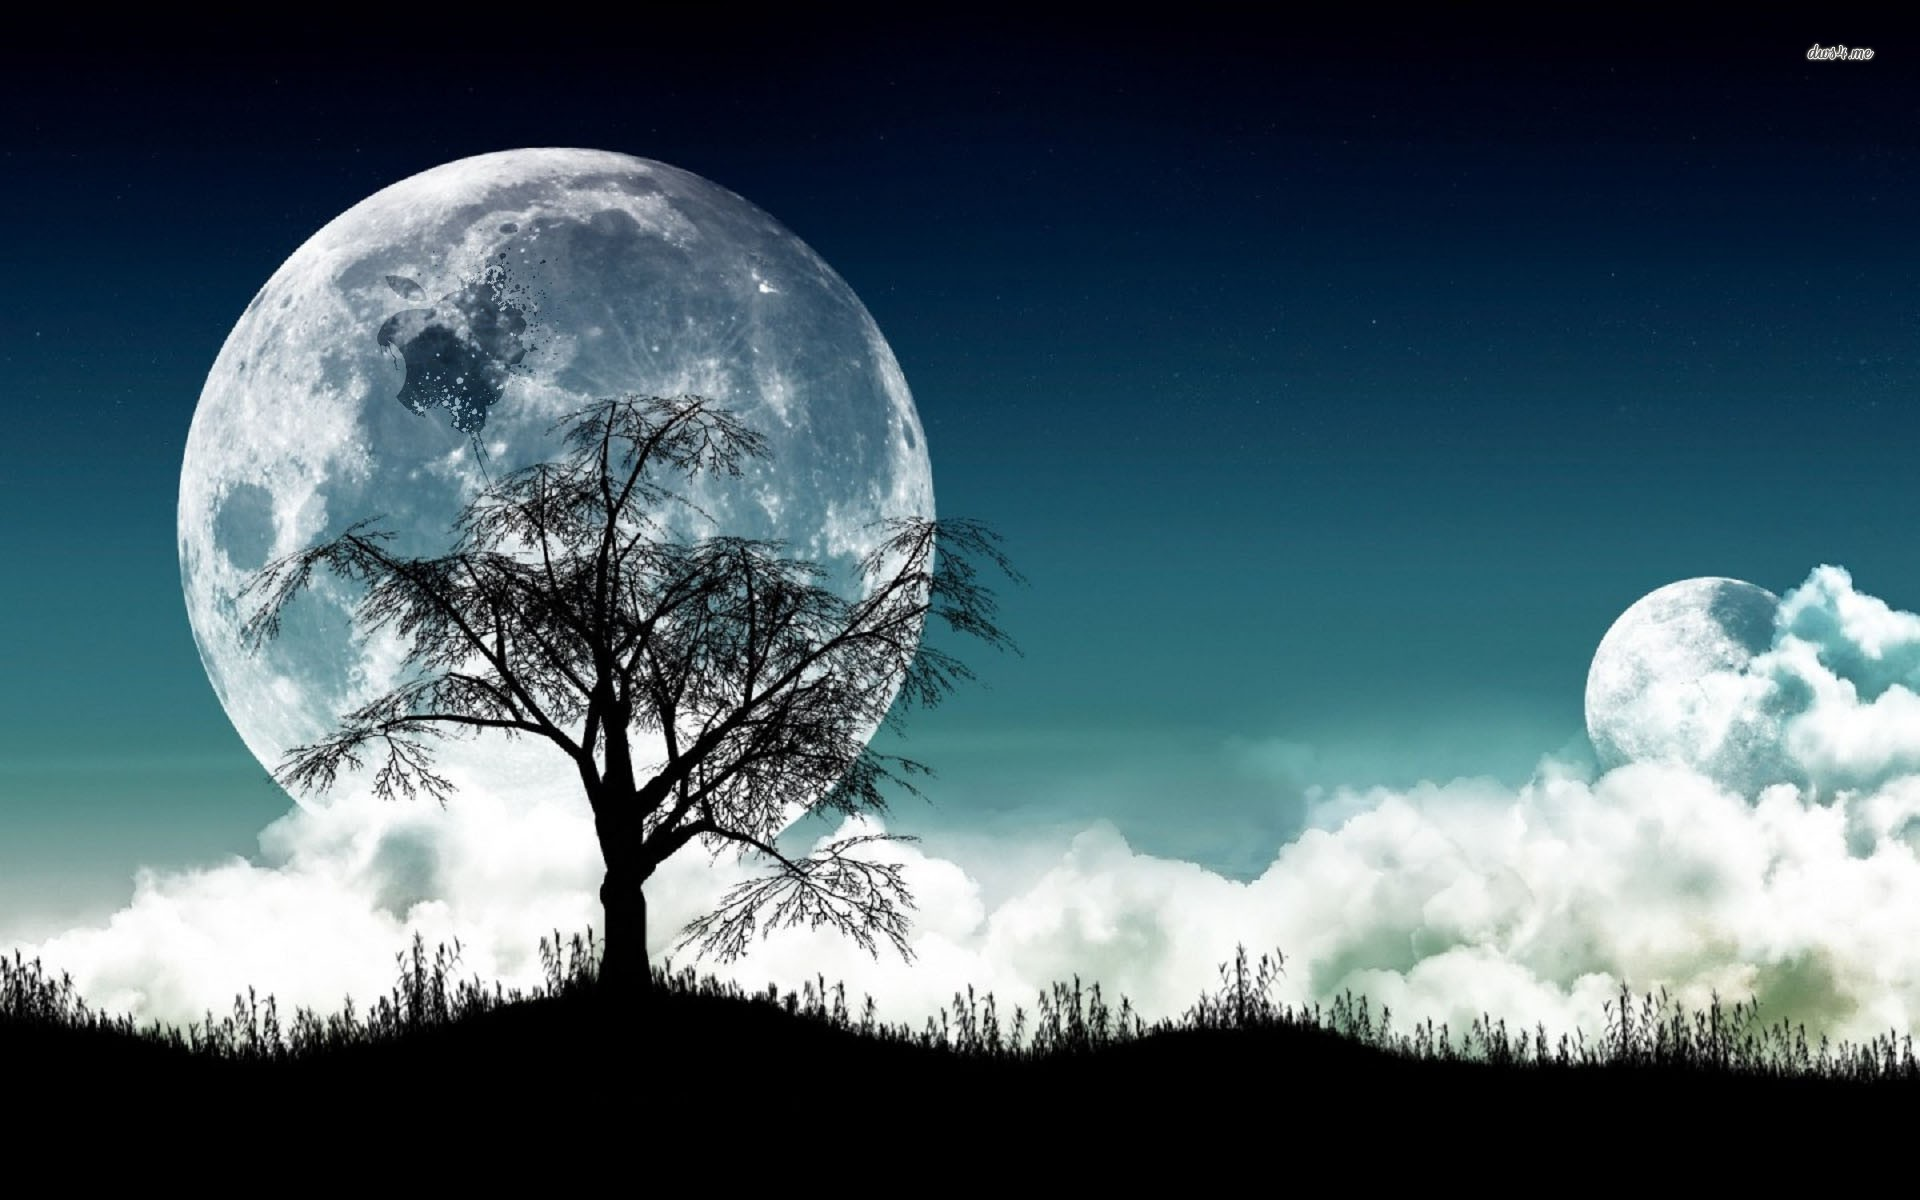 ... Moonlight wallpaper 1920x1200 ...